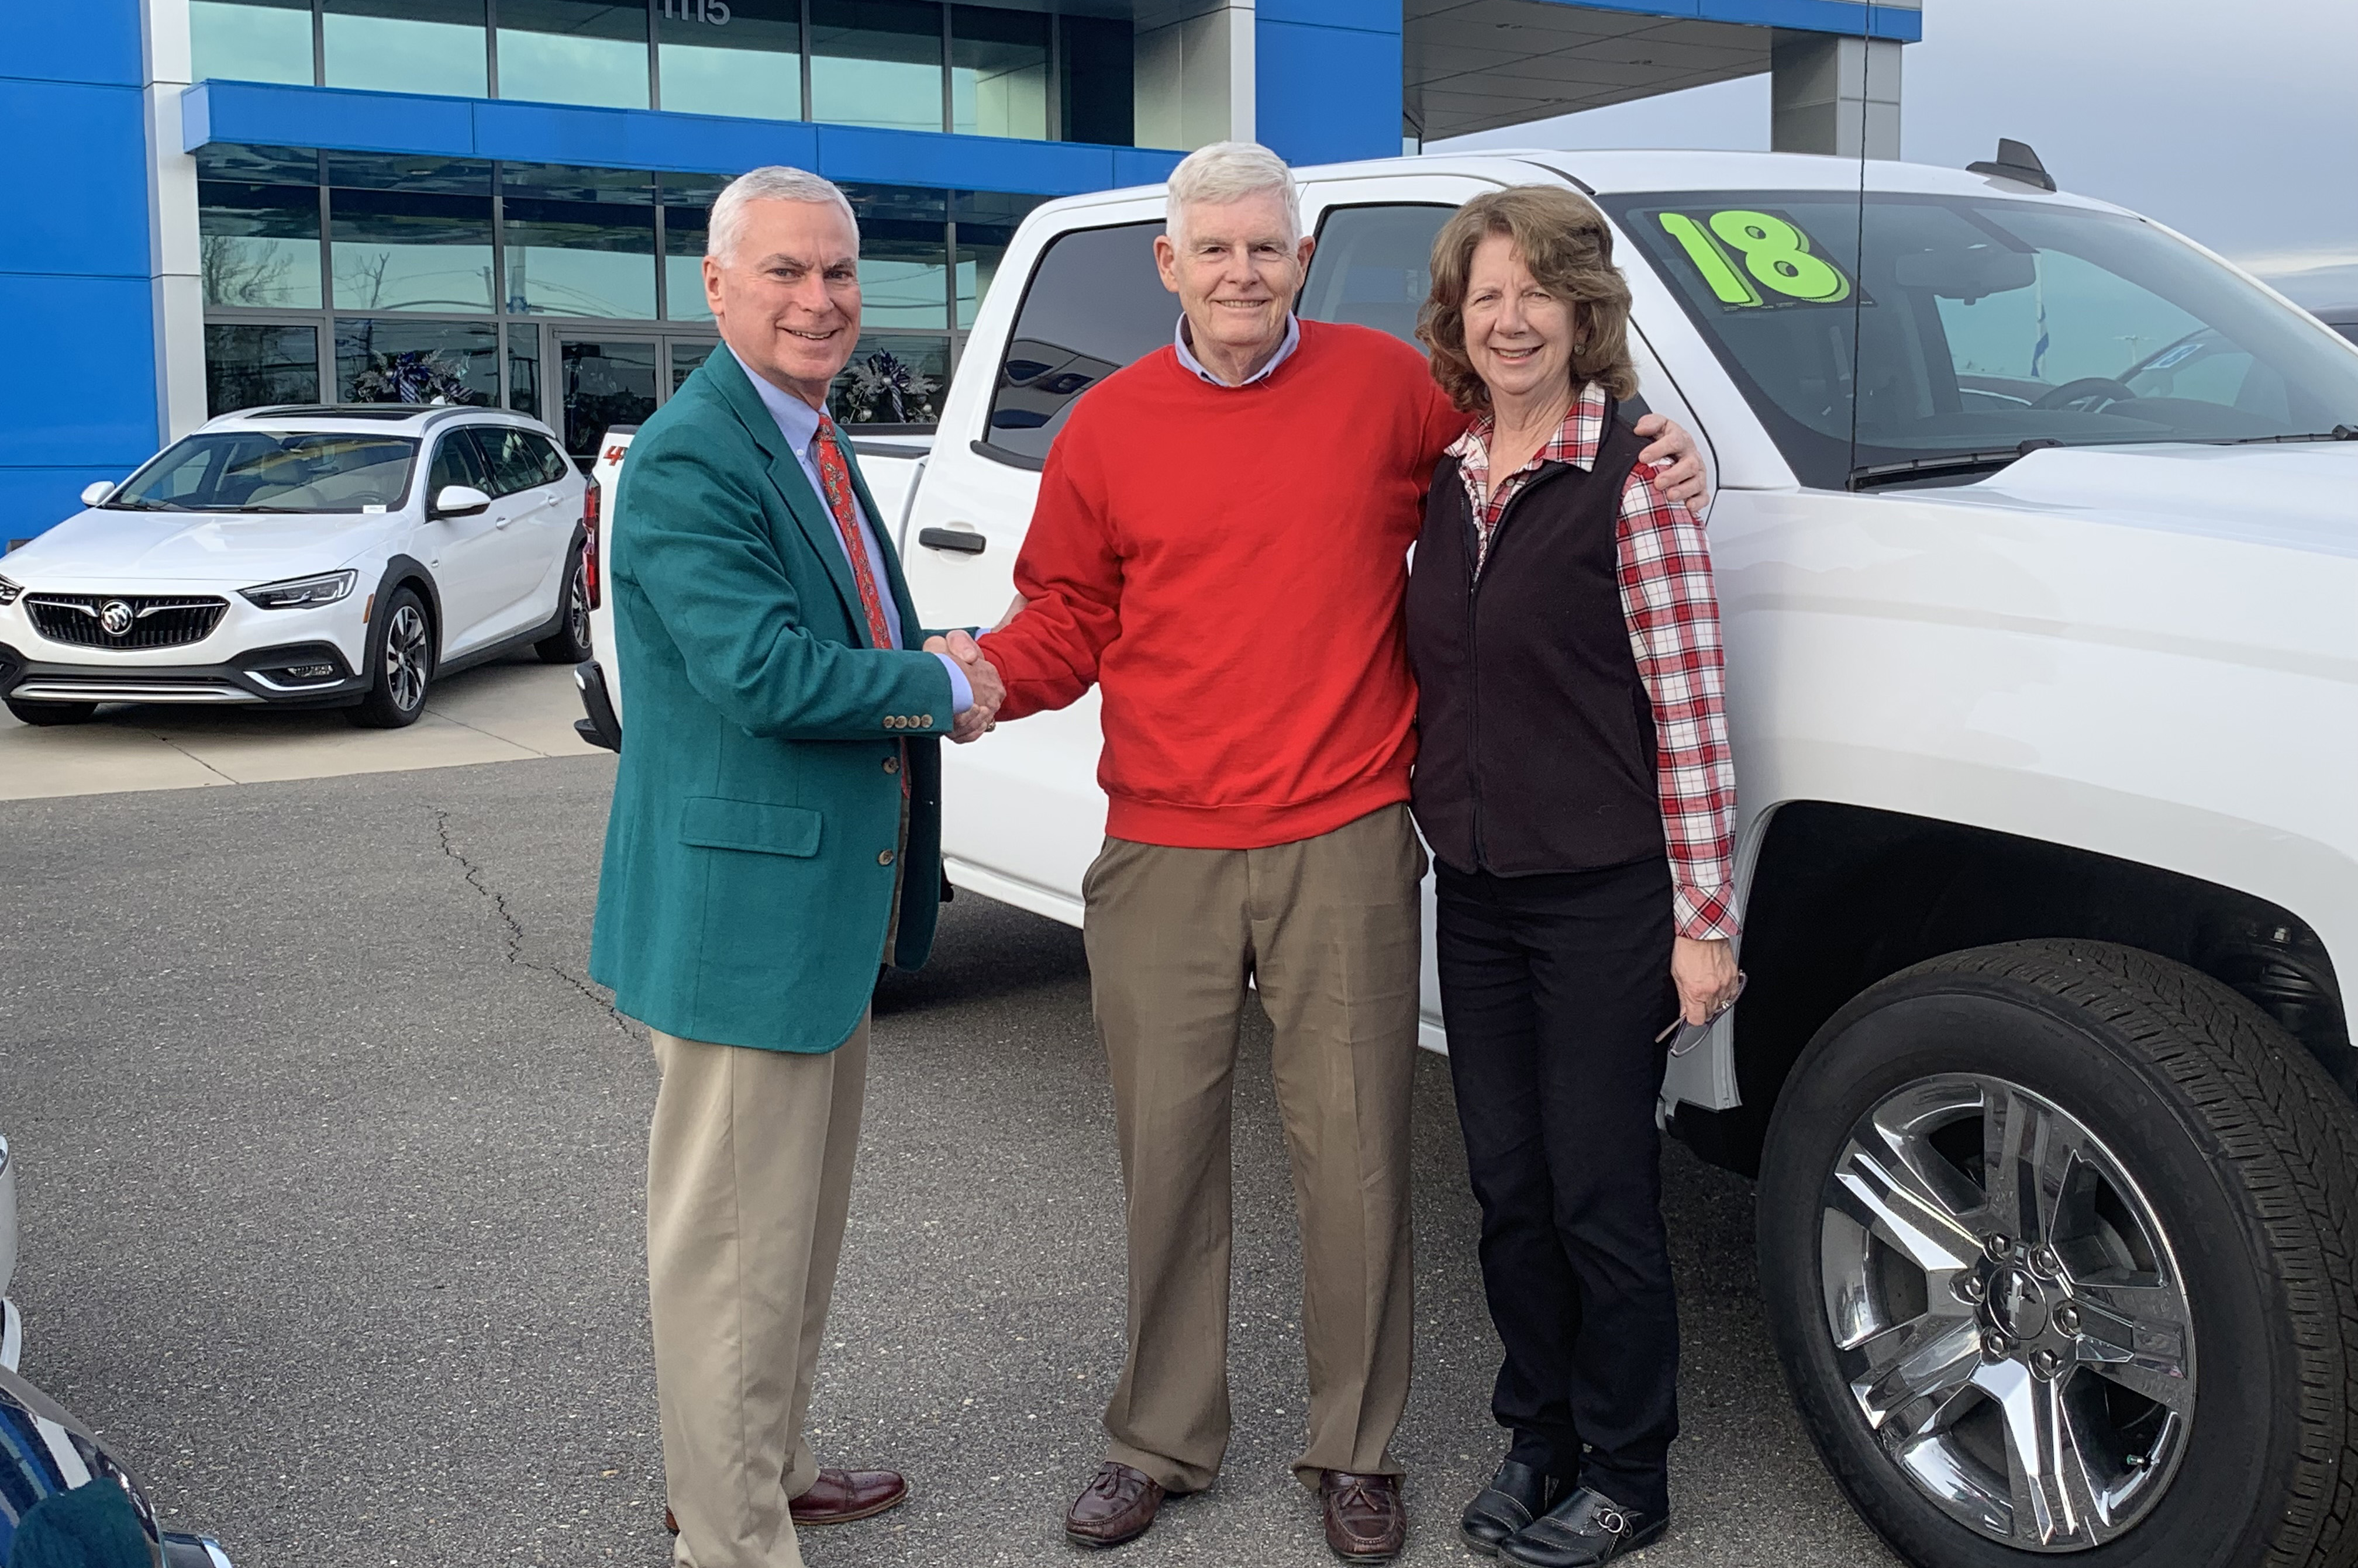 Joe Forgeng Jr. is the winner of the 2018 JCC Foundation Truck Raffle. Forgeng and his wife, Kate, are pictured with Dr. David Johnson, JCC president.